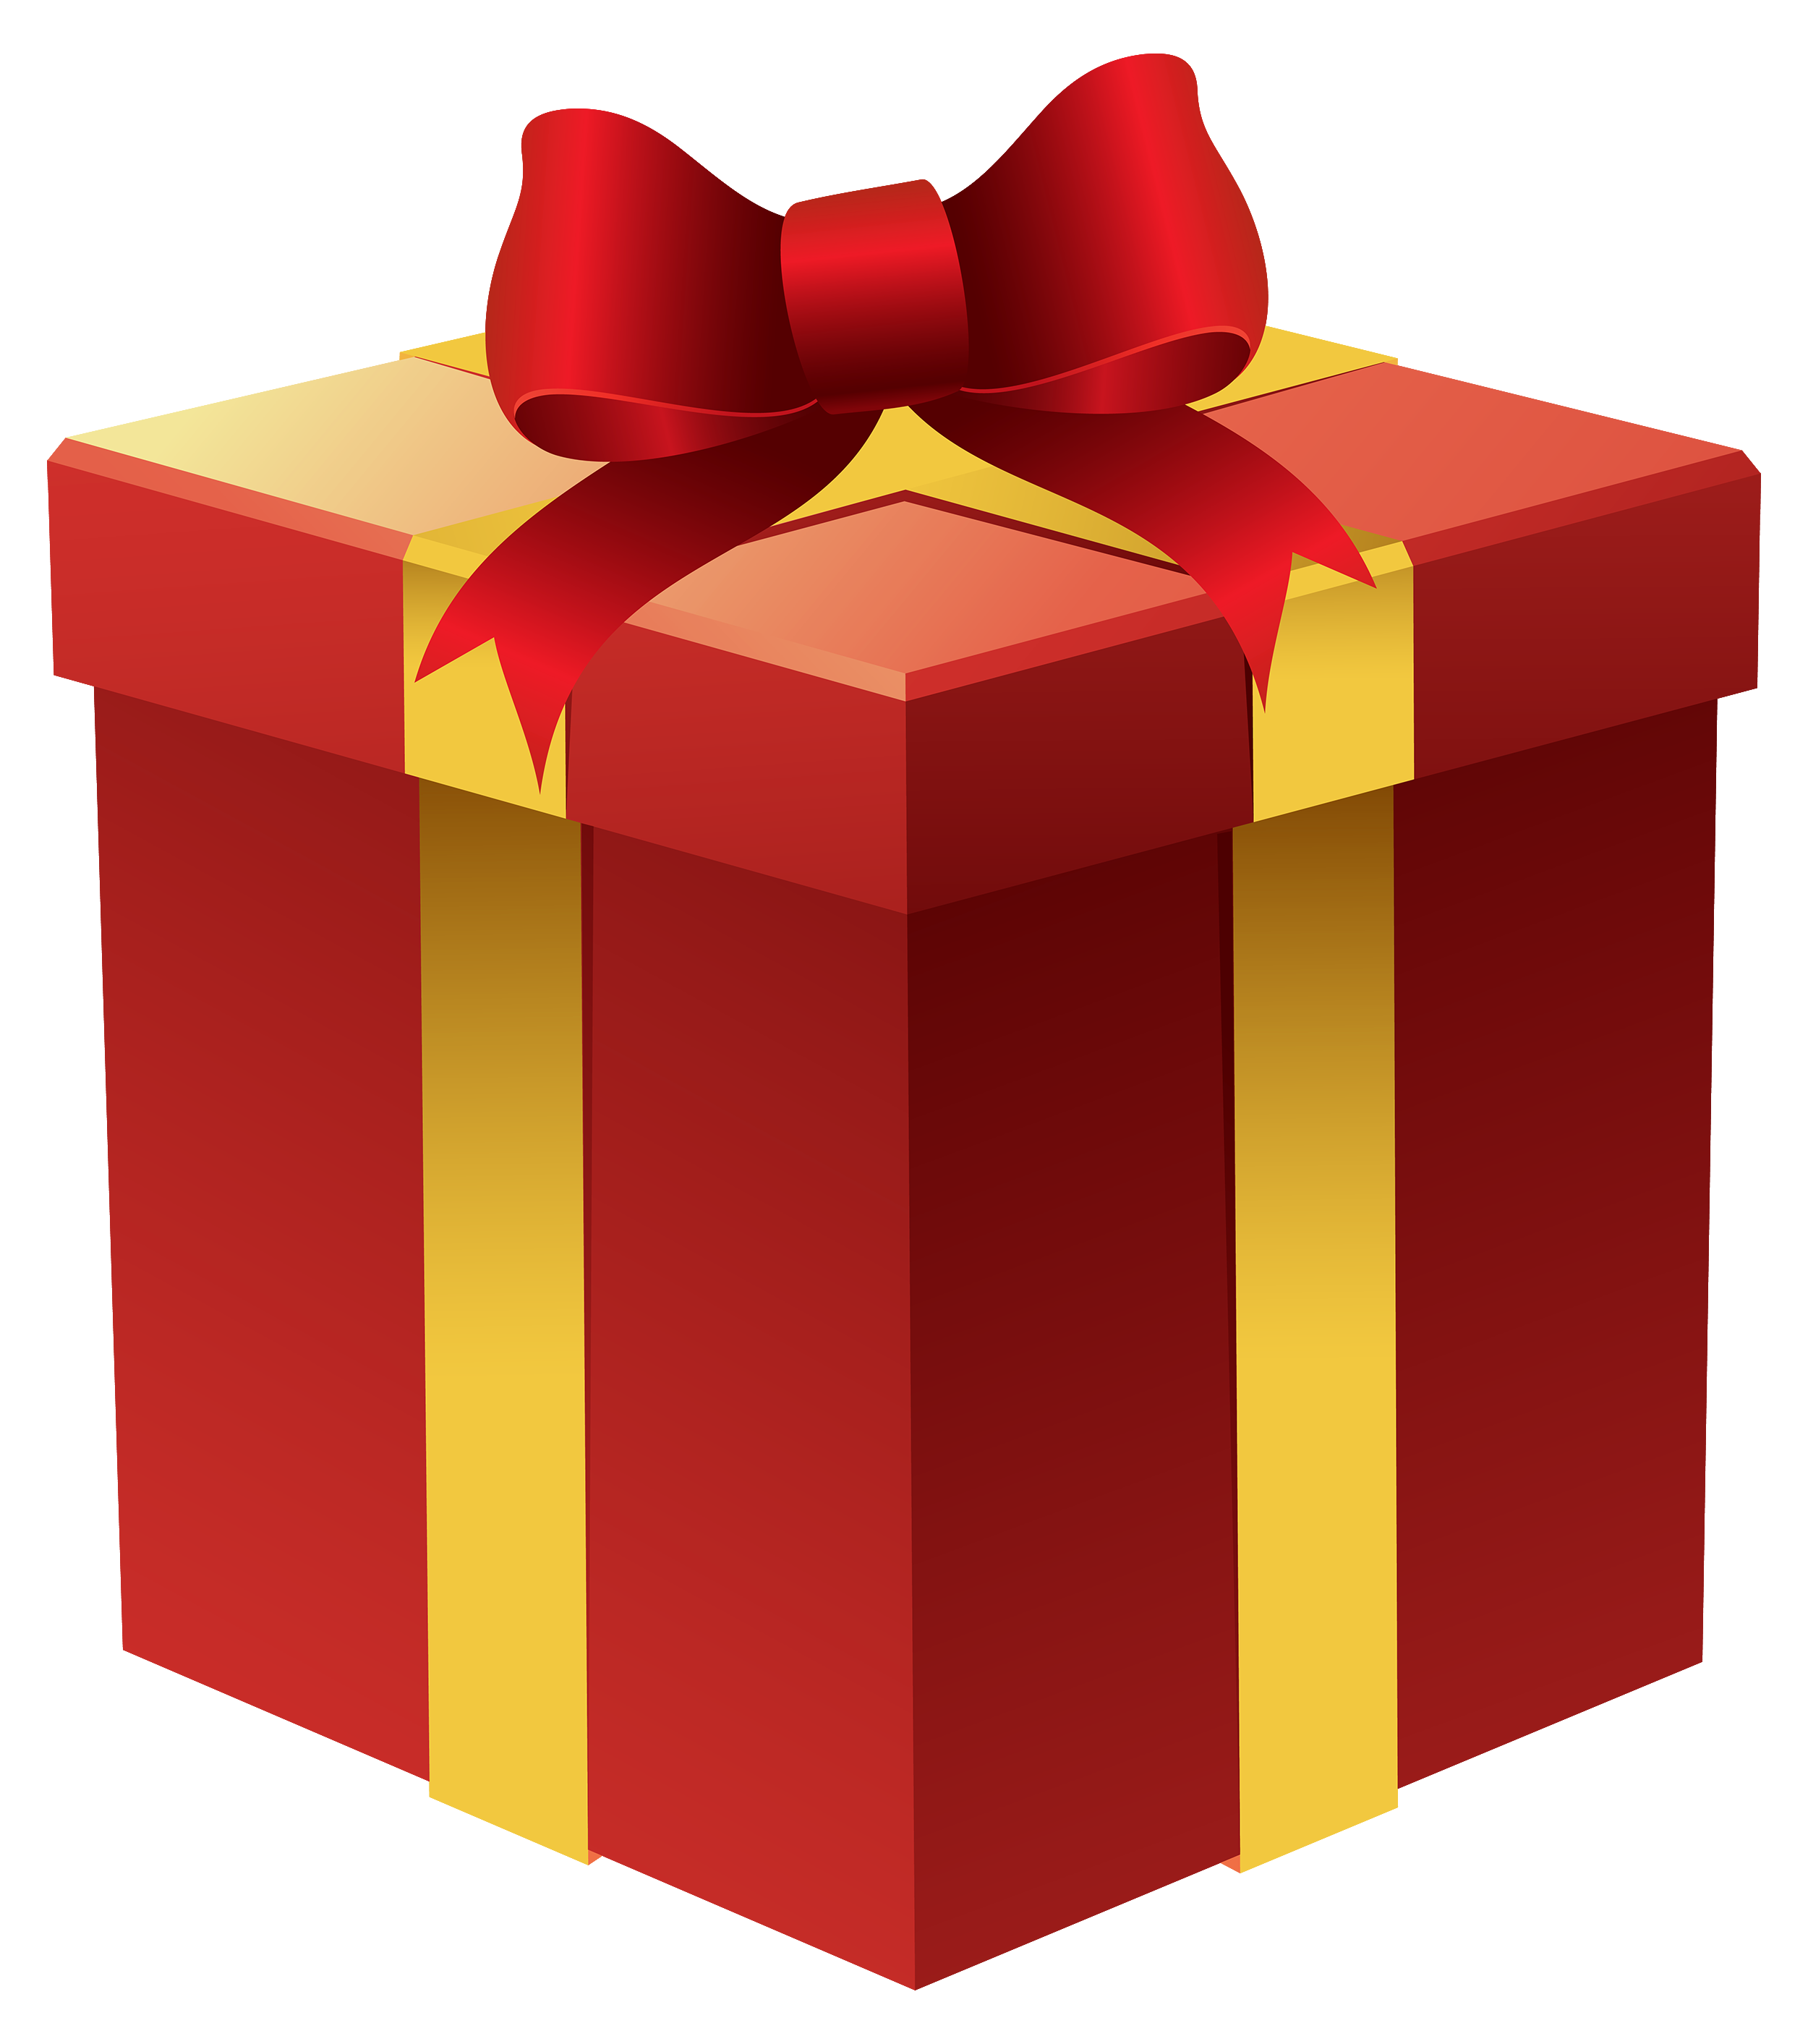 Gift clipart. Box in red png